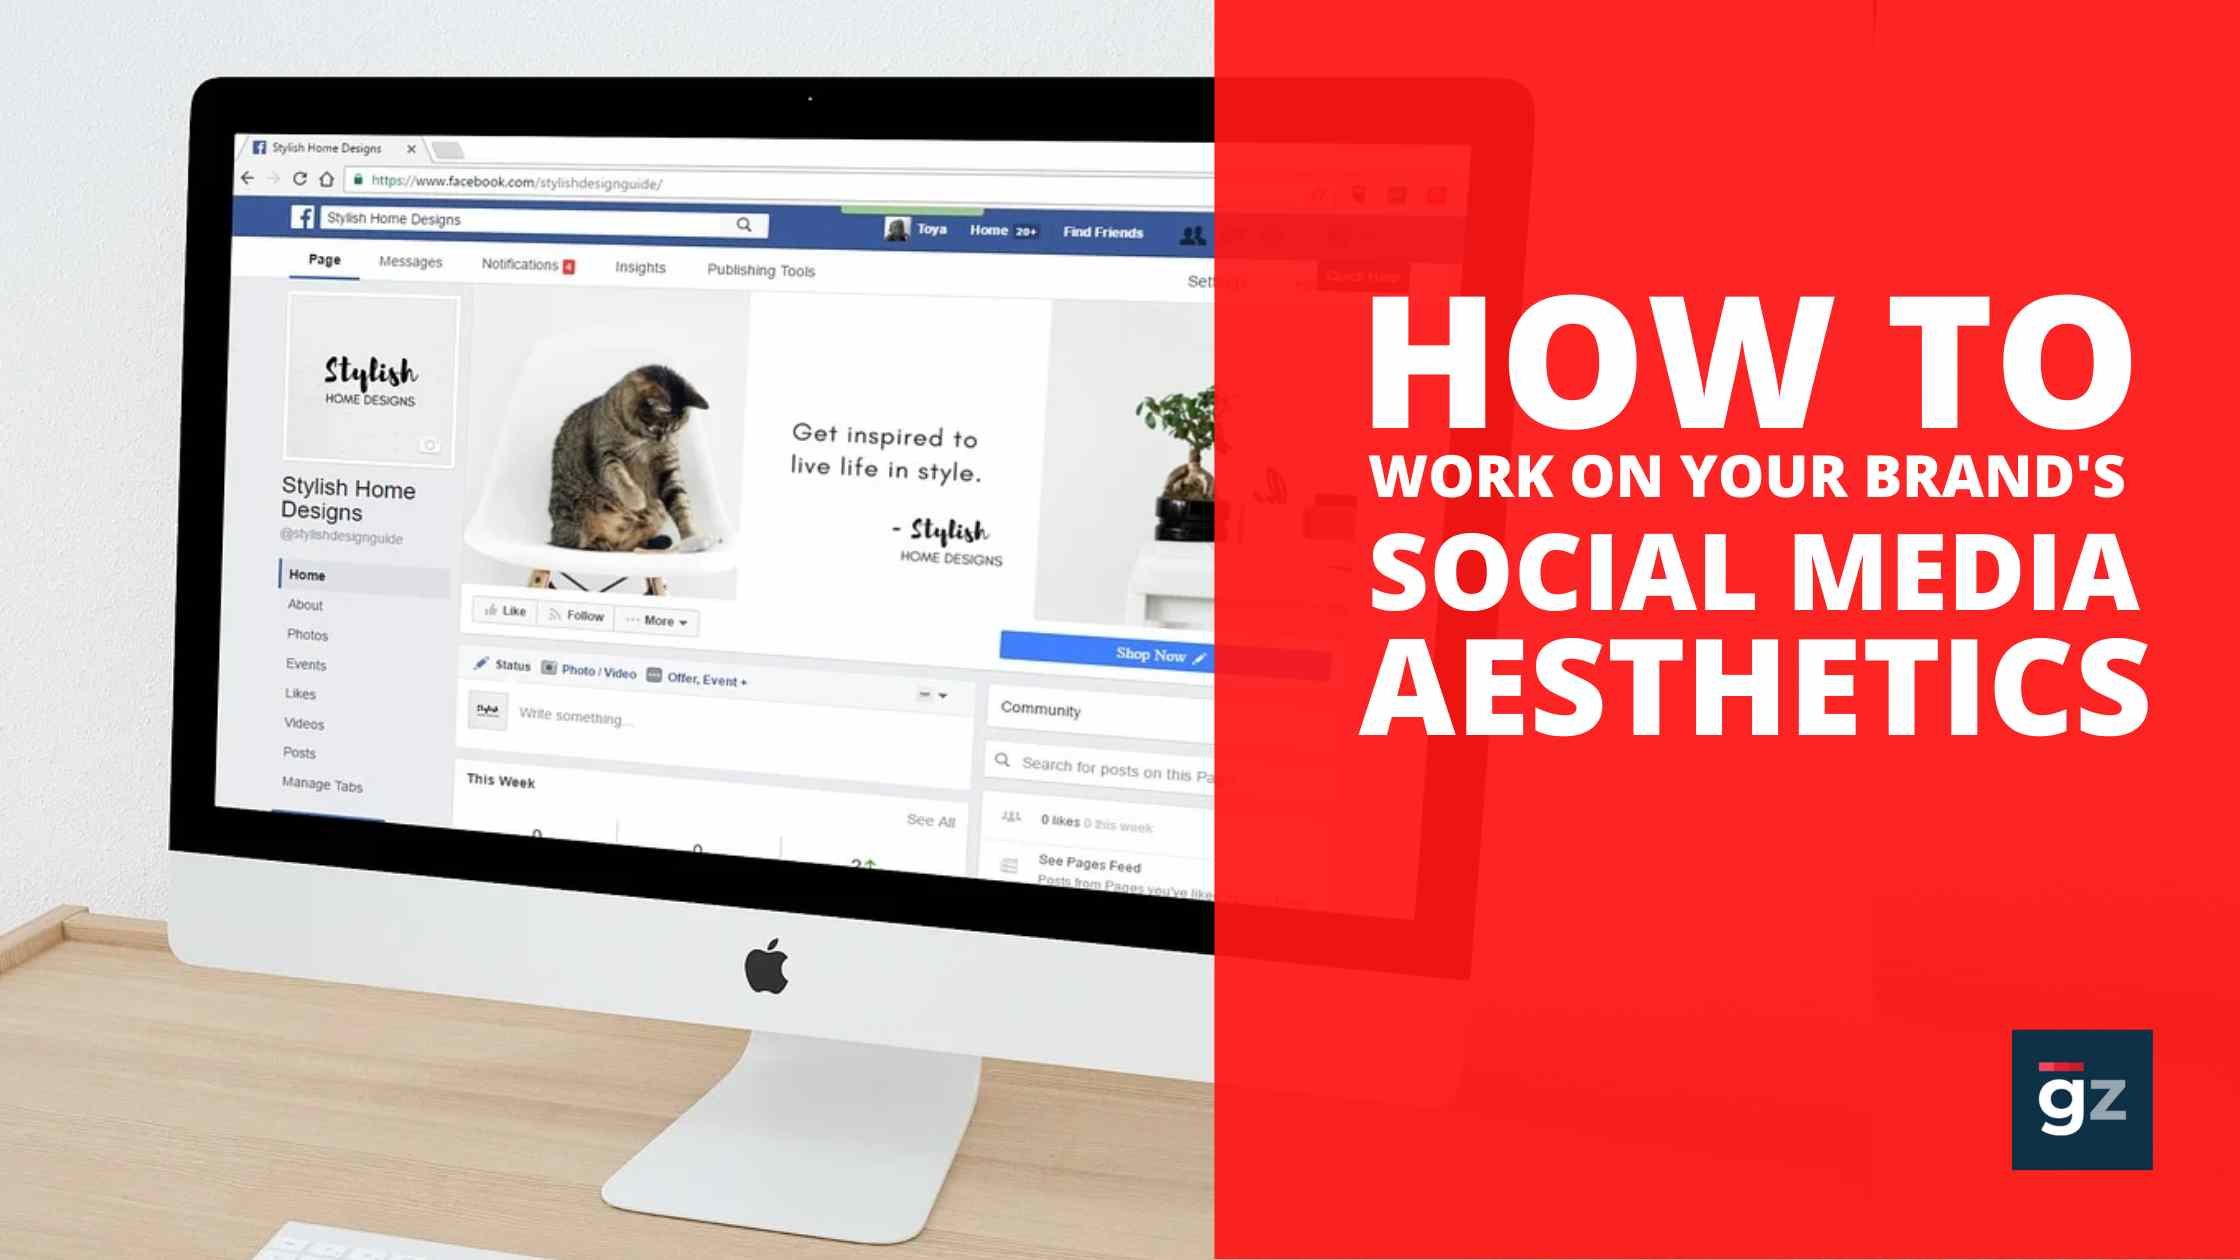 How To Work On Your Brand's Social Media Aesthetics